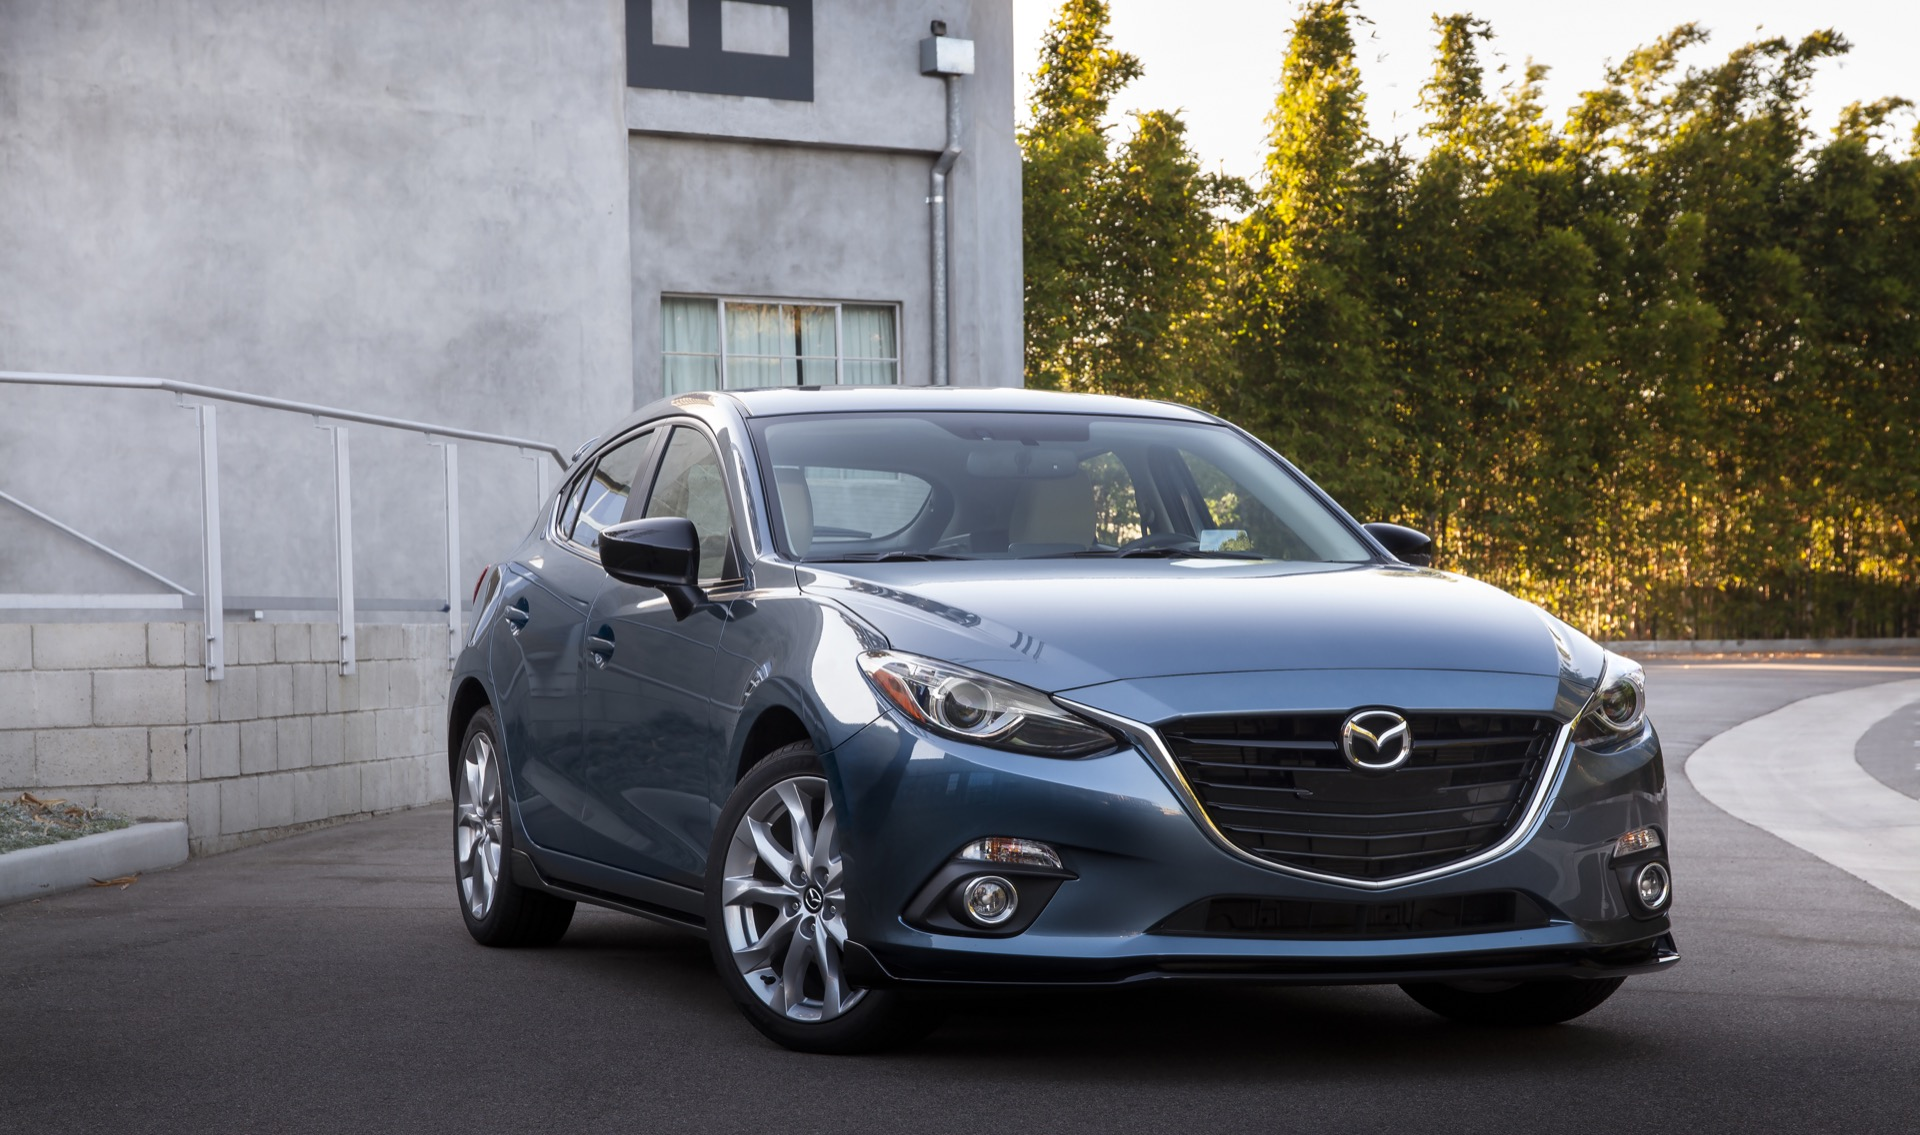 hawkesbury at used condition for amazing sale mazda